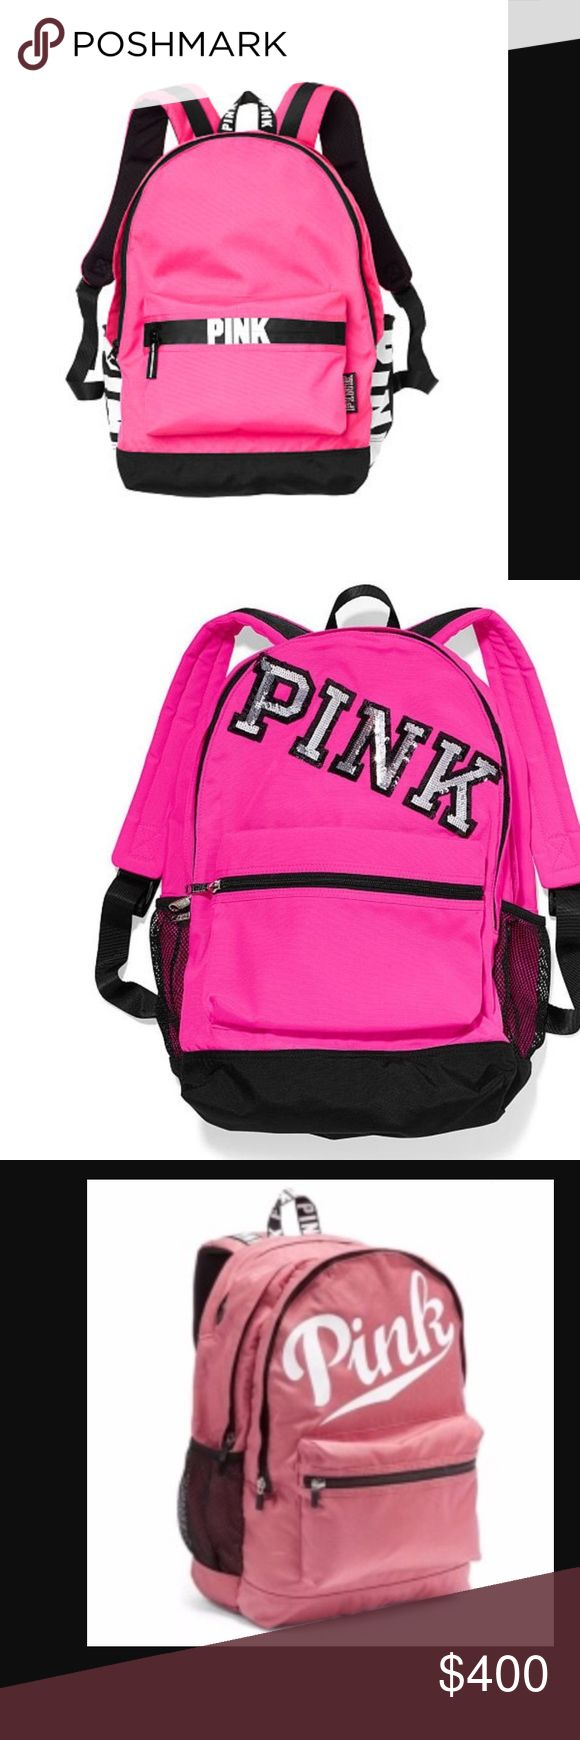 **ISO**Vs PINK Backpack (needs to be a pink color) Hi everyone, I hope my fellow Poshers can help me with this ISO! My niece is DESPERATE to own a backpack resembling these photos. I can't spend a TON of money, so I'd love it if someone would trade for it or sell it for a reasonable price. Thanks in advance! PINK Victoria's Secret Bags Backpacks